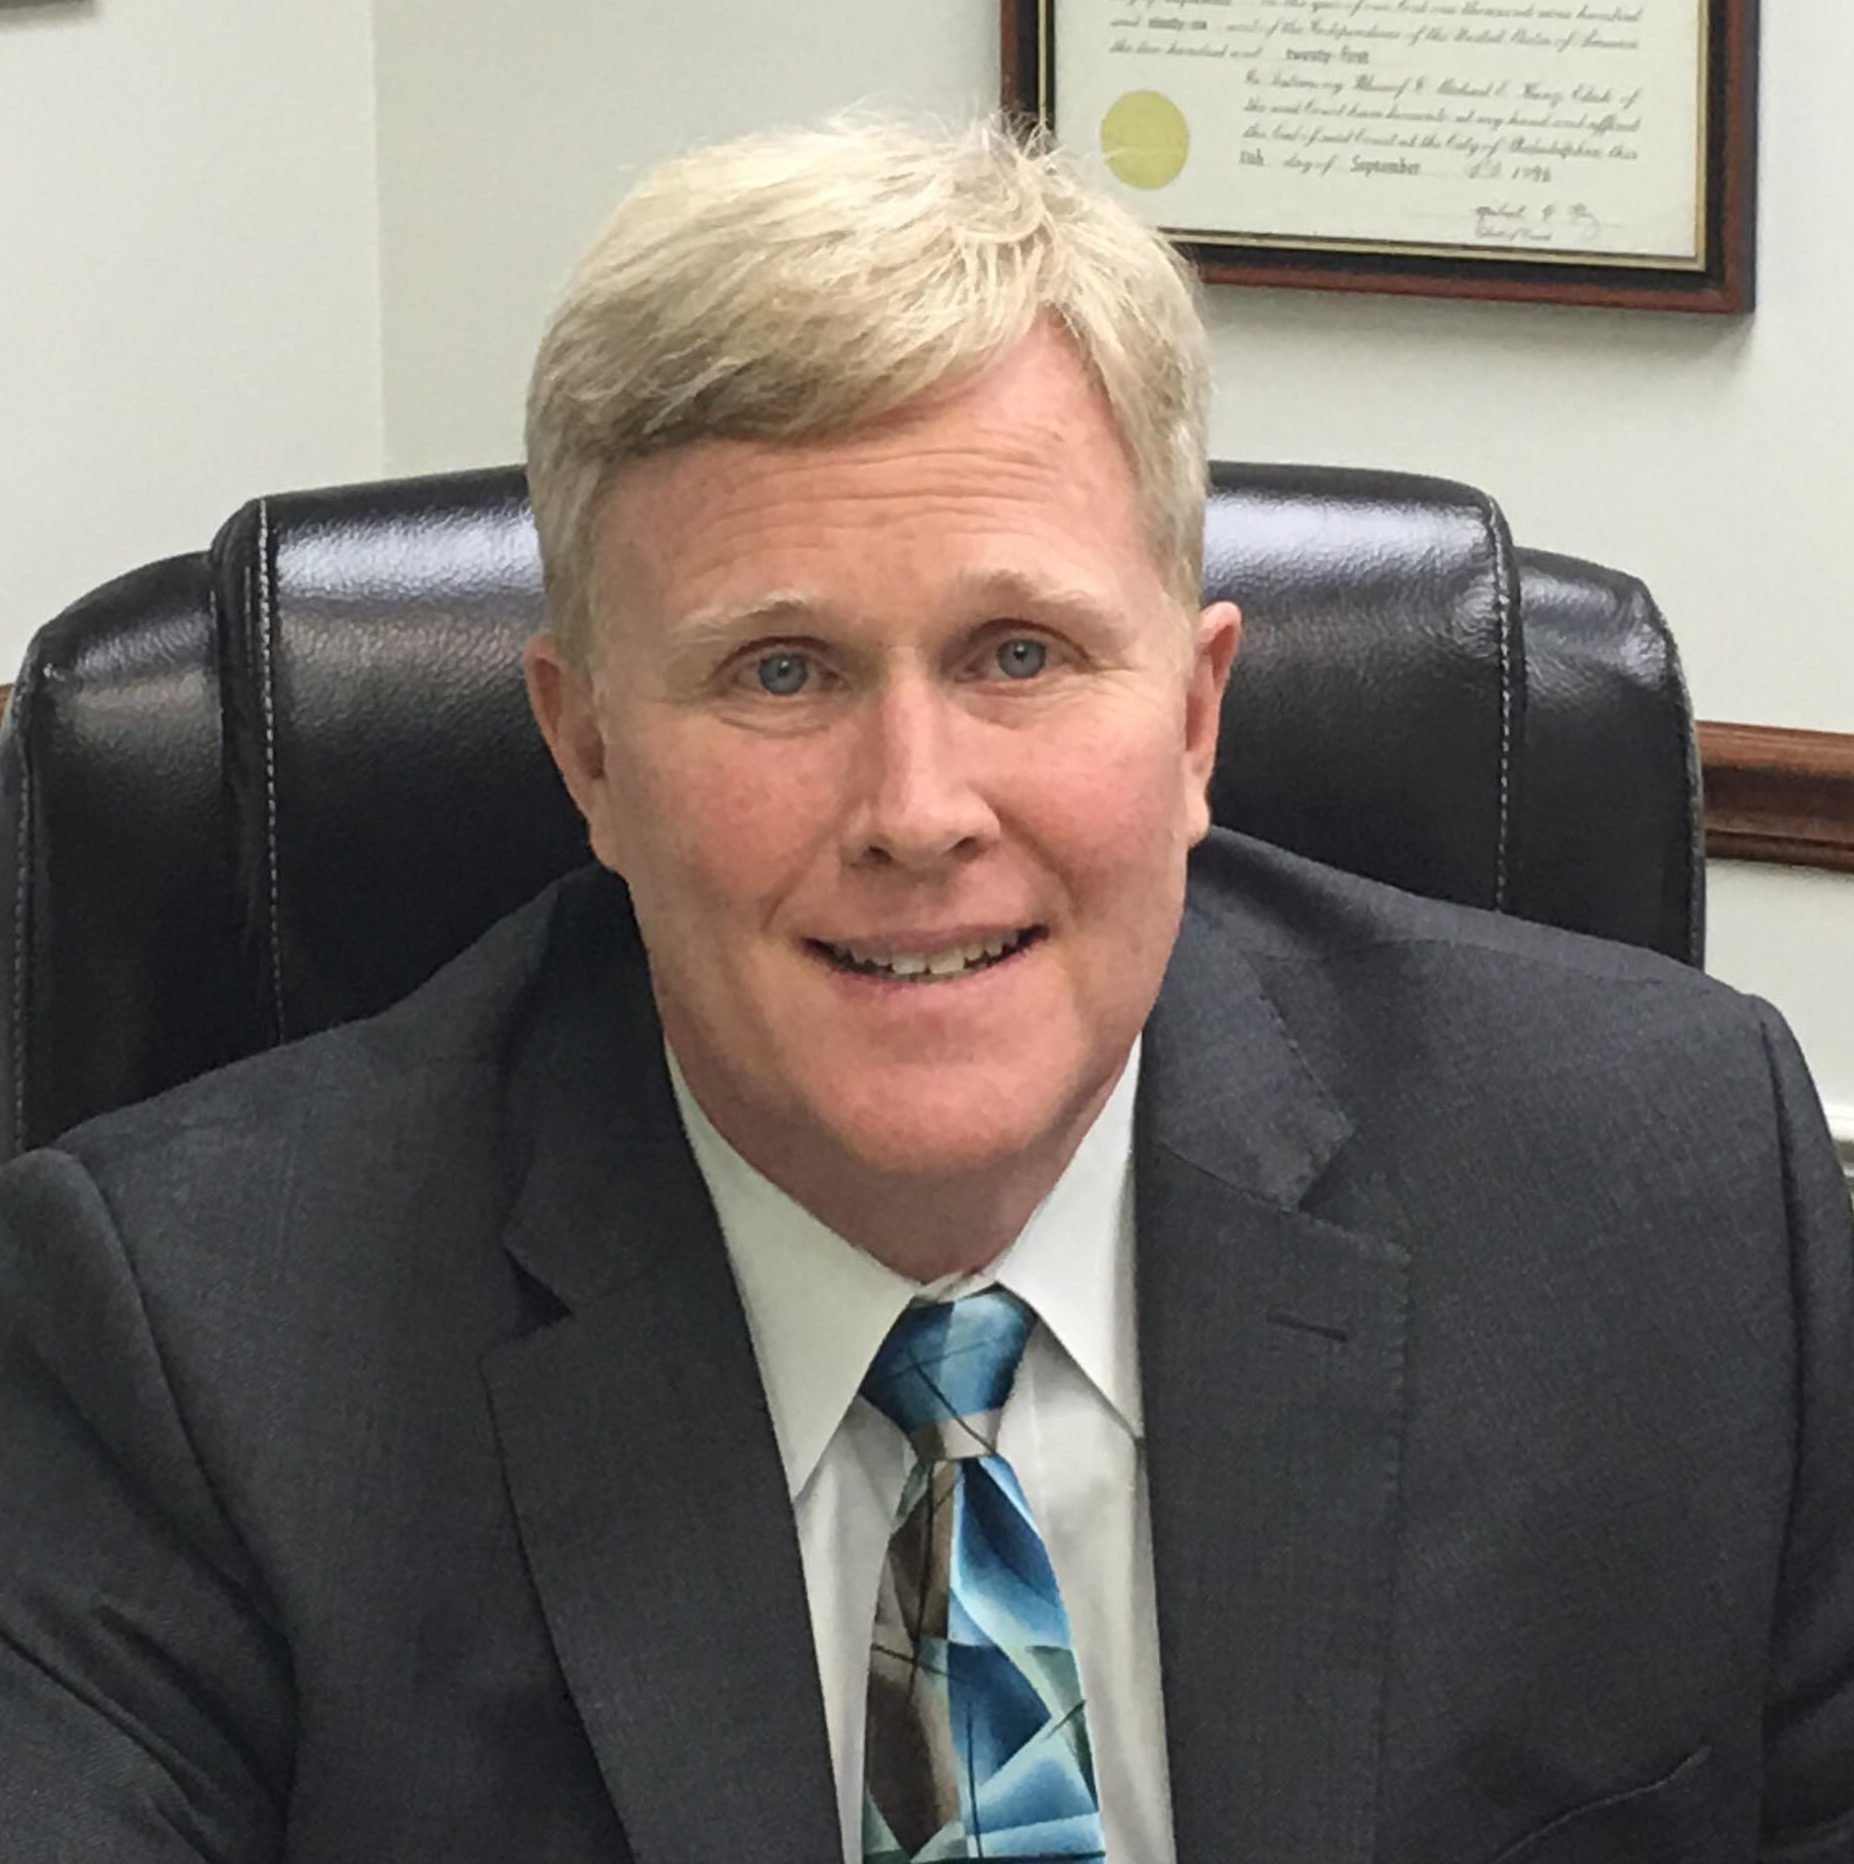 Law Office of Steven F. O'Meara Profile Picture